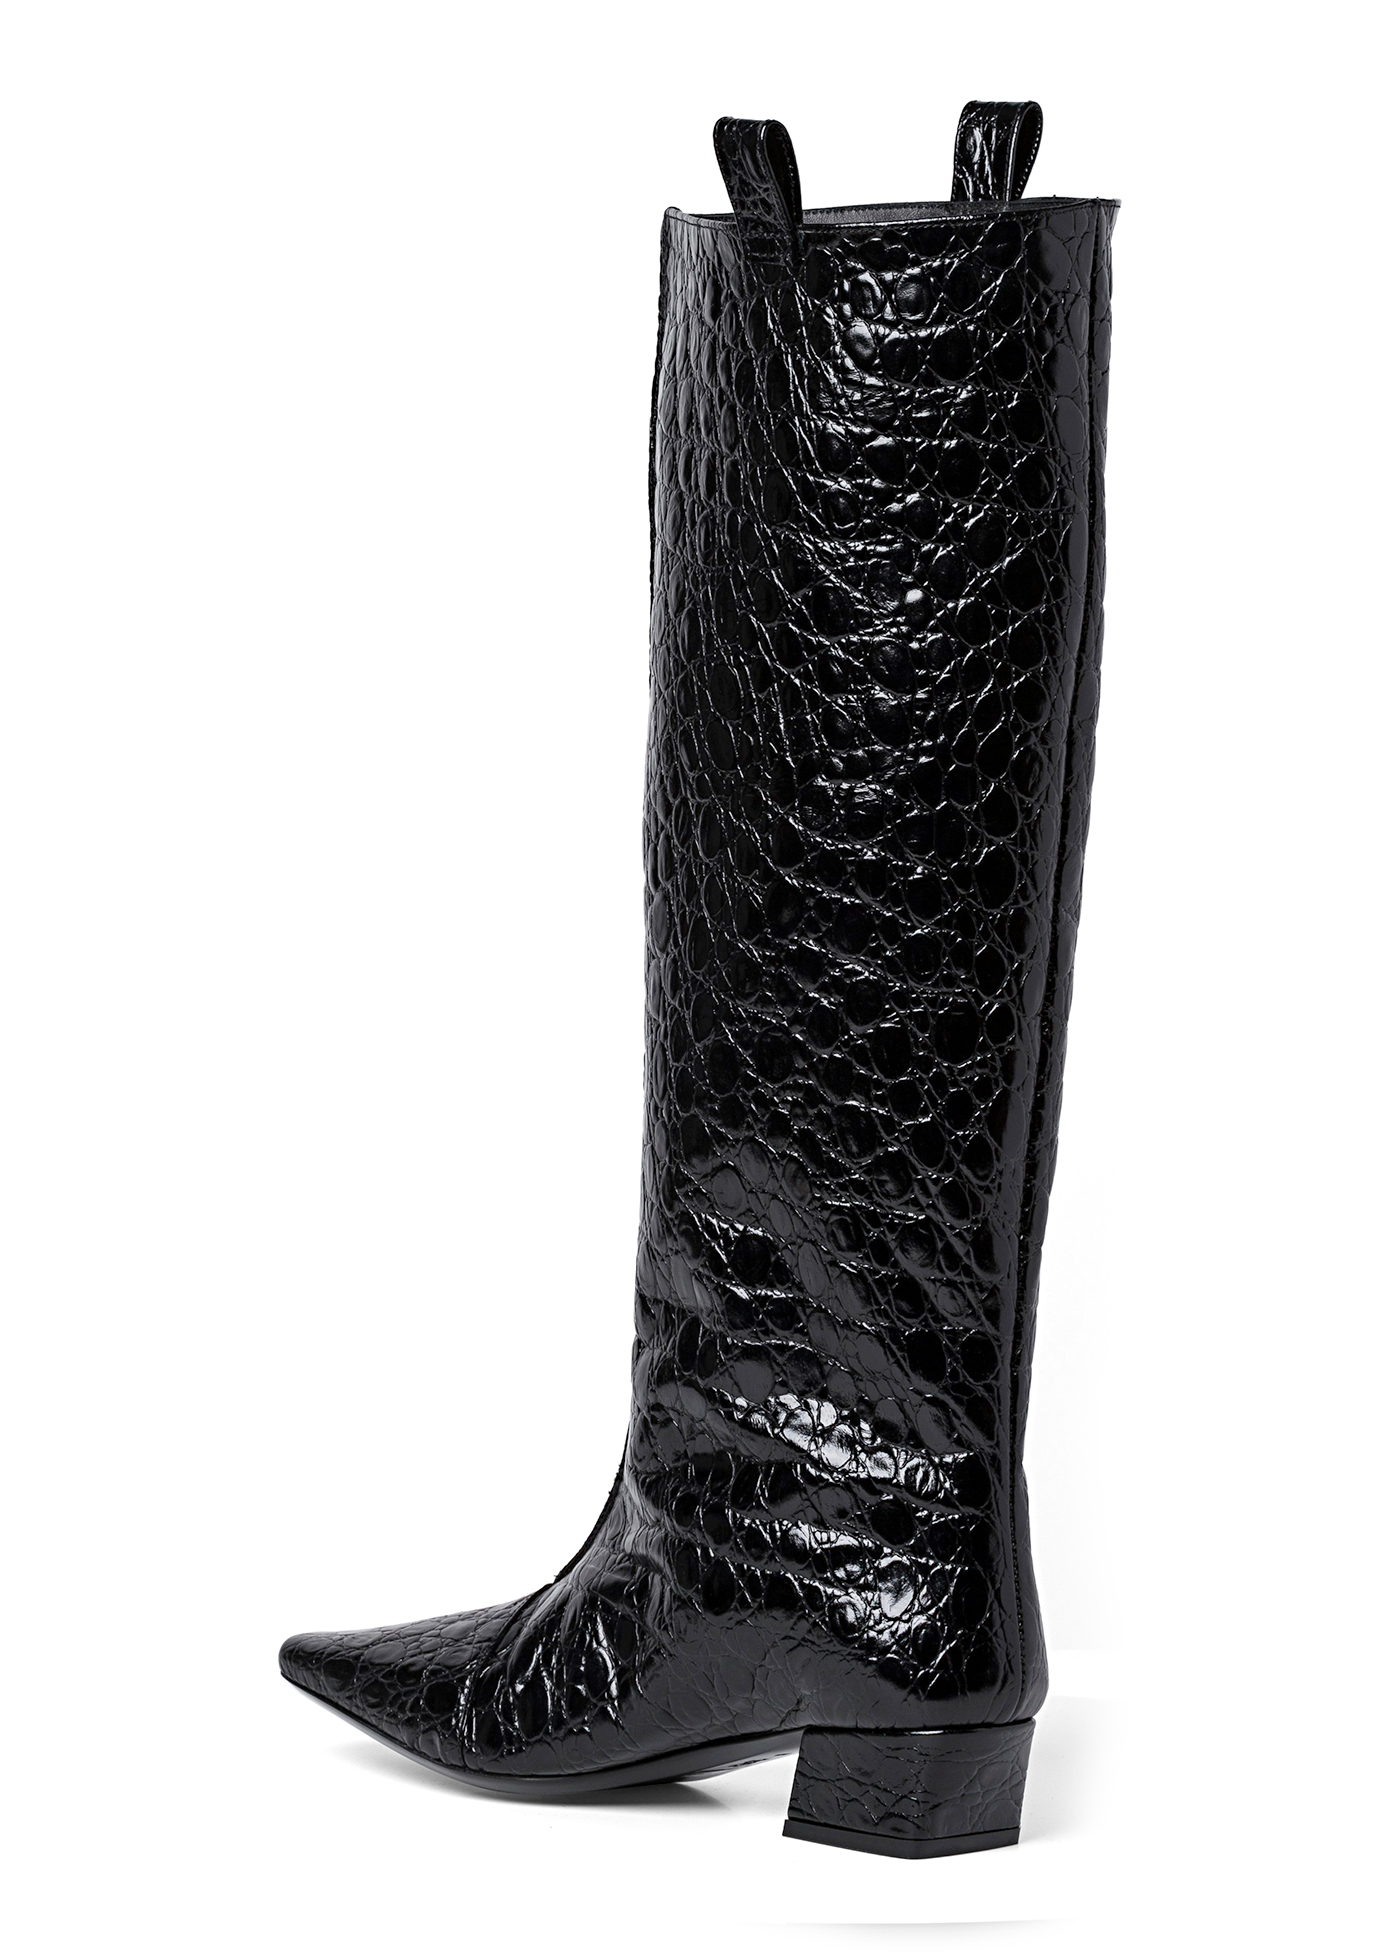 REMY BLACK CIRCULAR CROCO EMBOSSED LEATHER image number 2